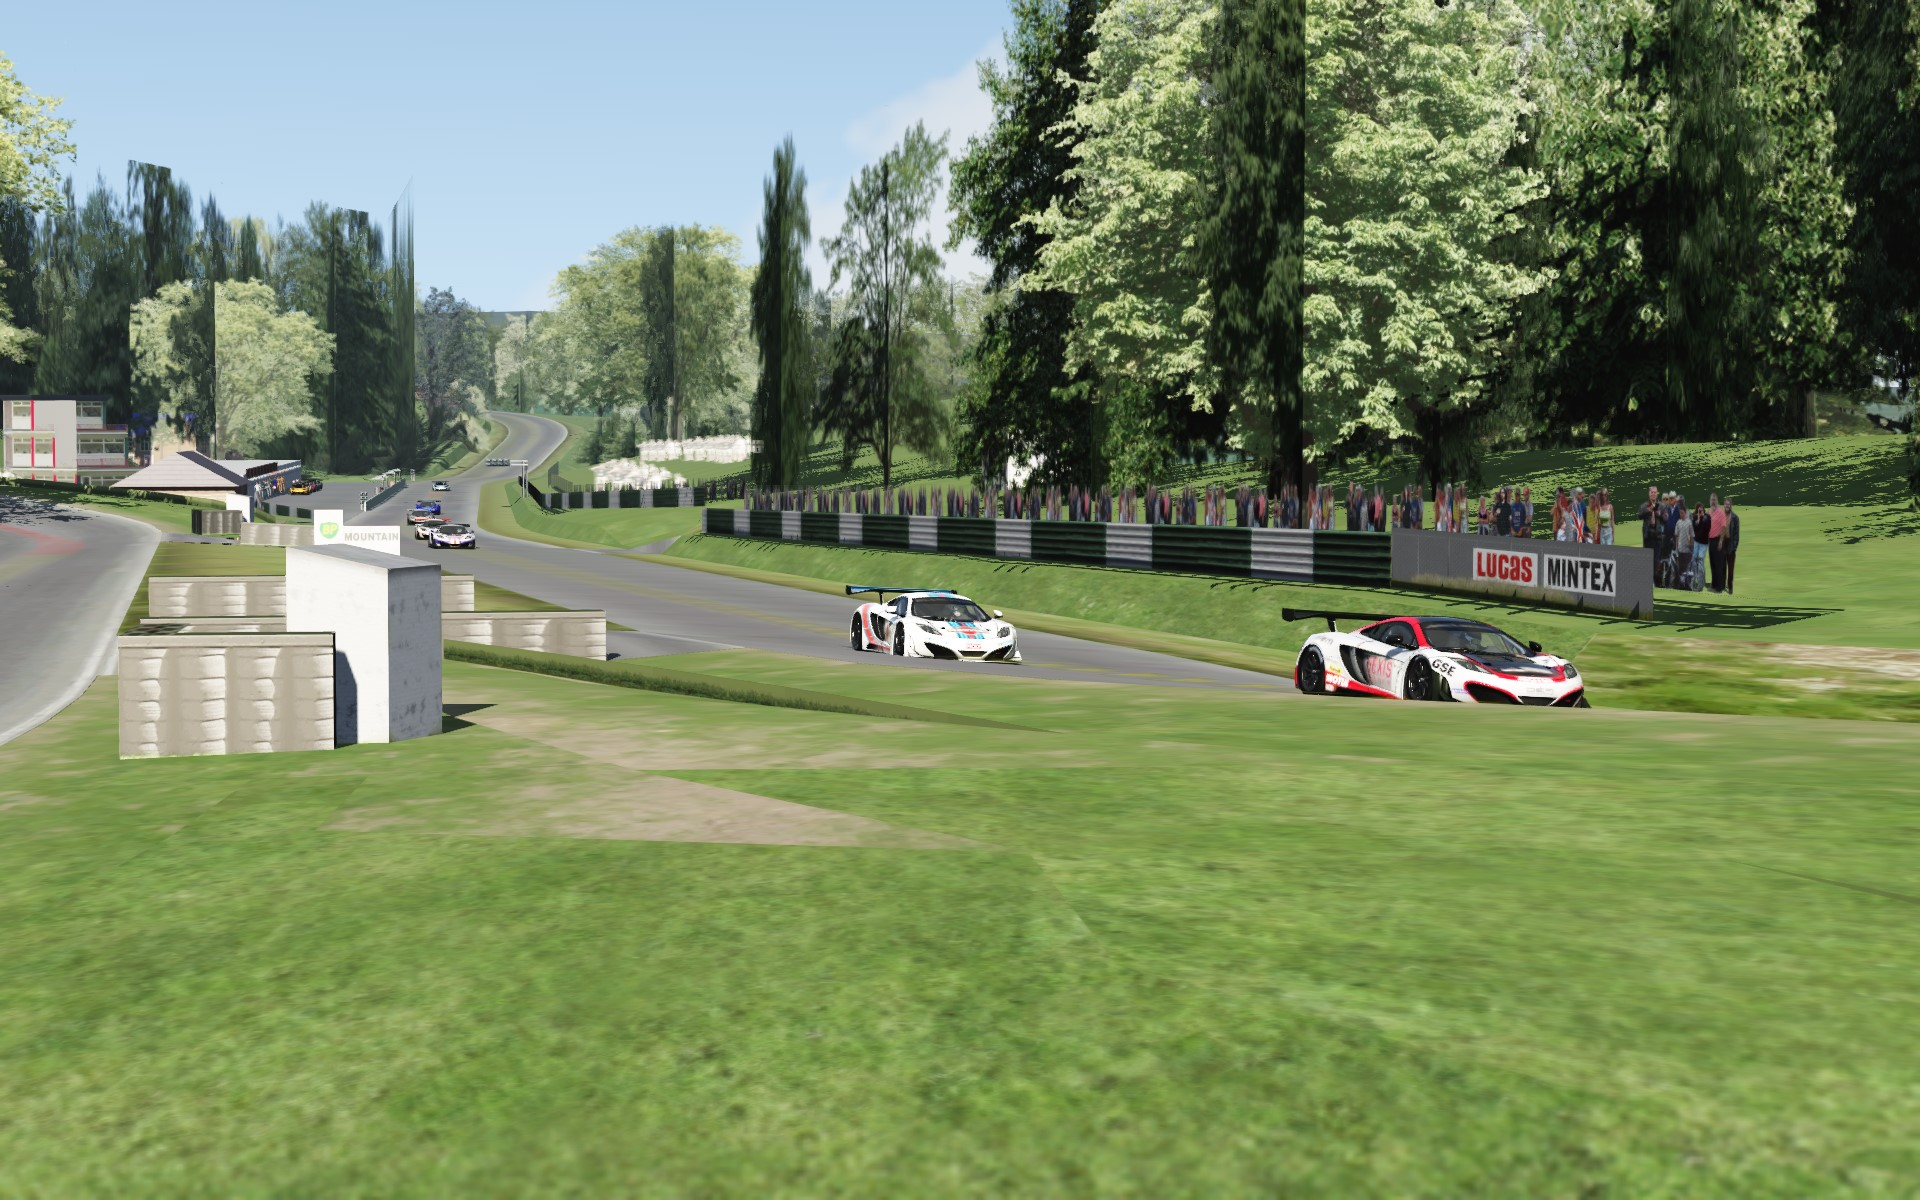 Screenshot_mclaren_mp412c_gt3_cadwell_21-6-115-15-21-55.jpg